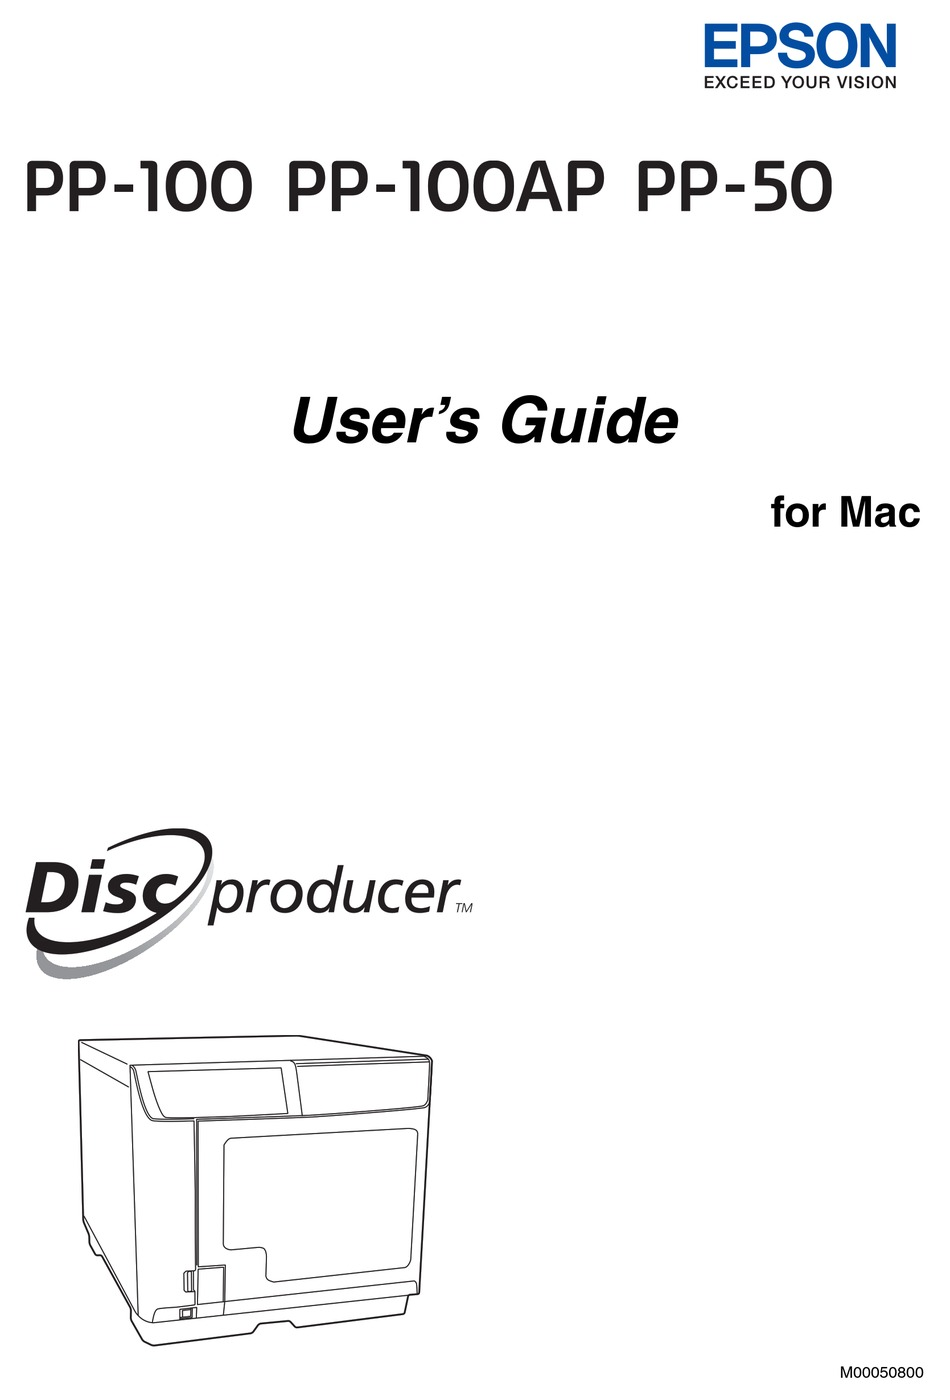 EPSON DISC PRODUCER PP-100 USER MANUAL Pdf Download